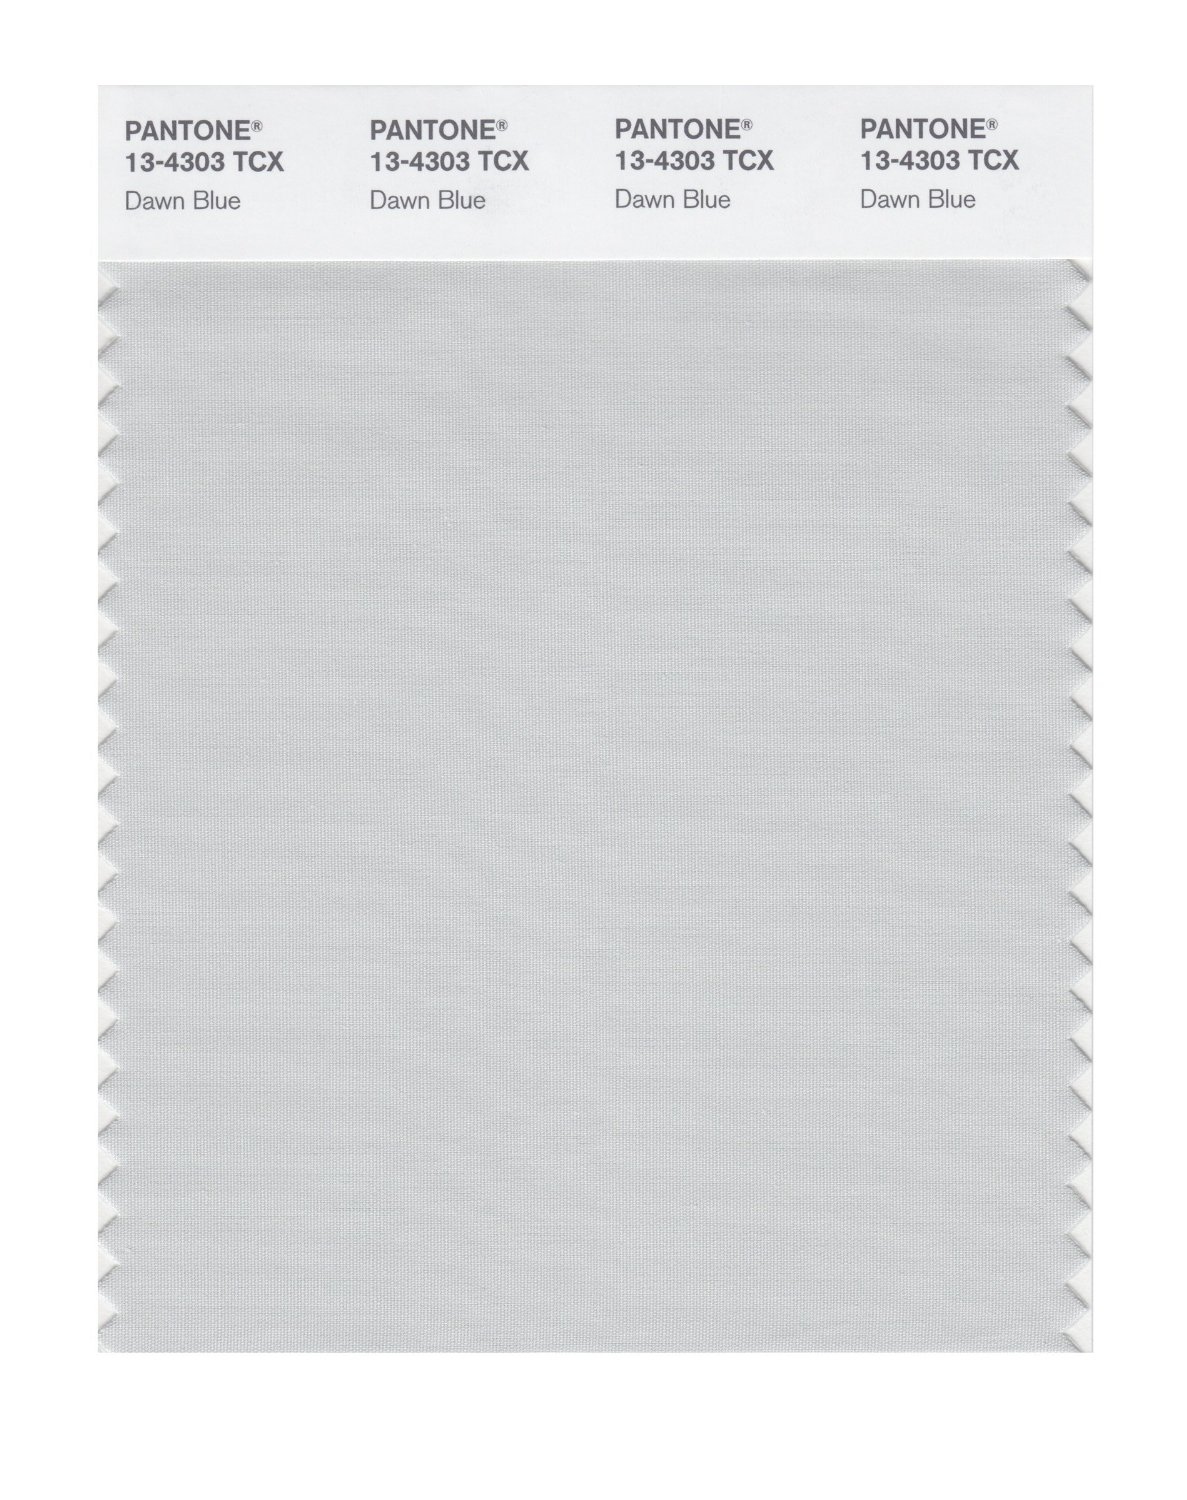 Pantone Smart Swatch 13-4303 Dawn Blue